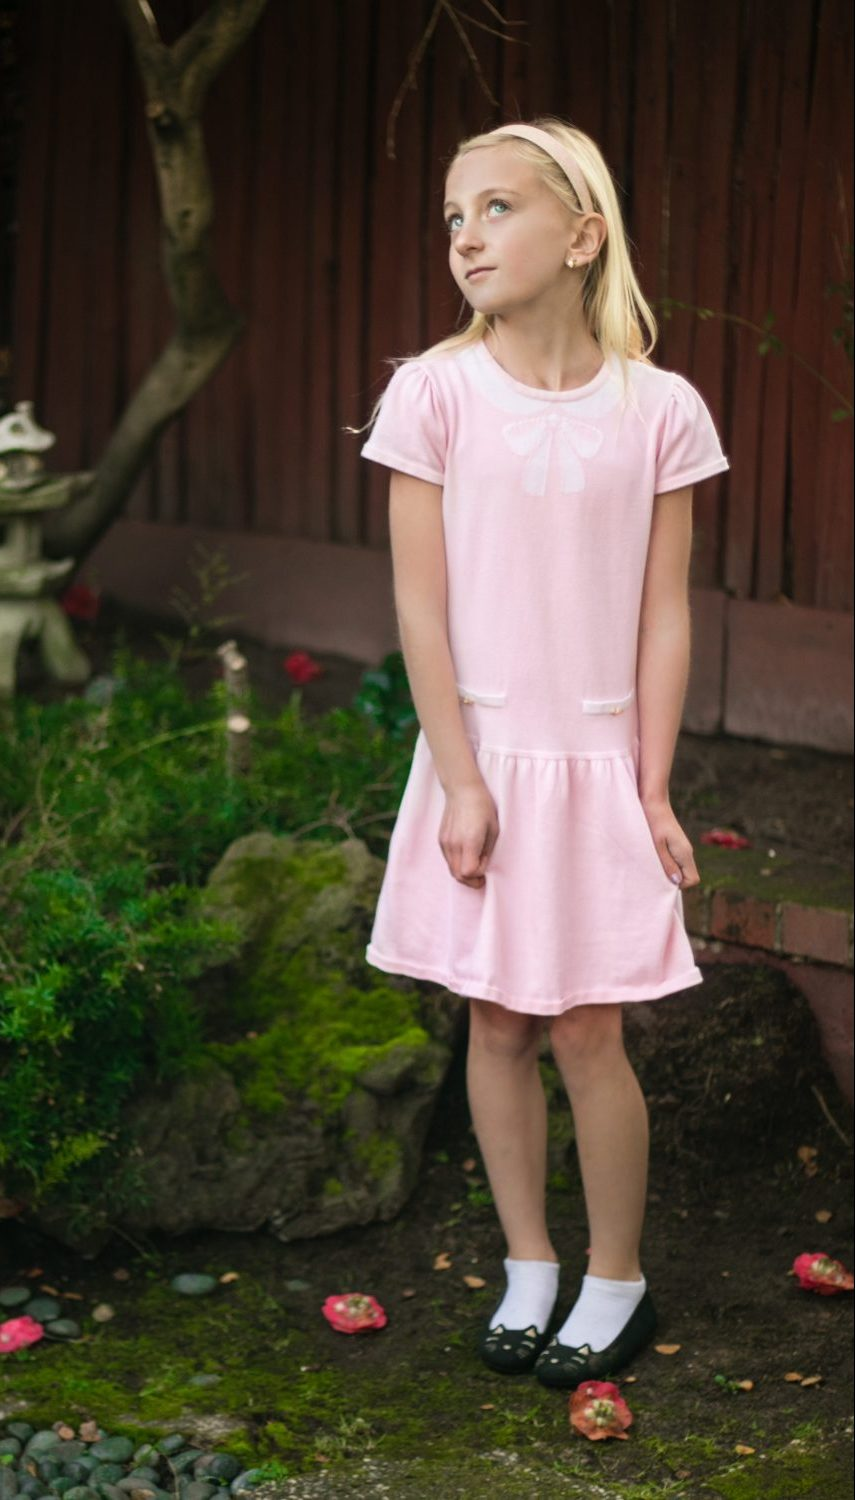 You will love these afforable, Organic Cotton Valentines Day Dresses - TINSELBOX #organiccotton #kidsfashion #valentines